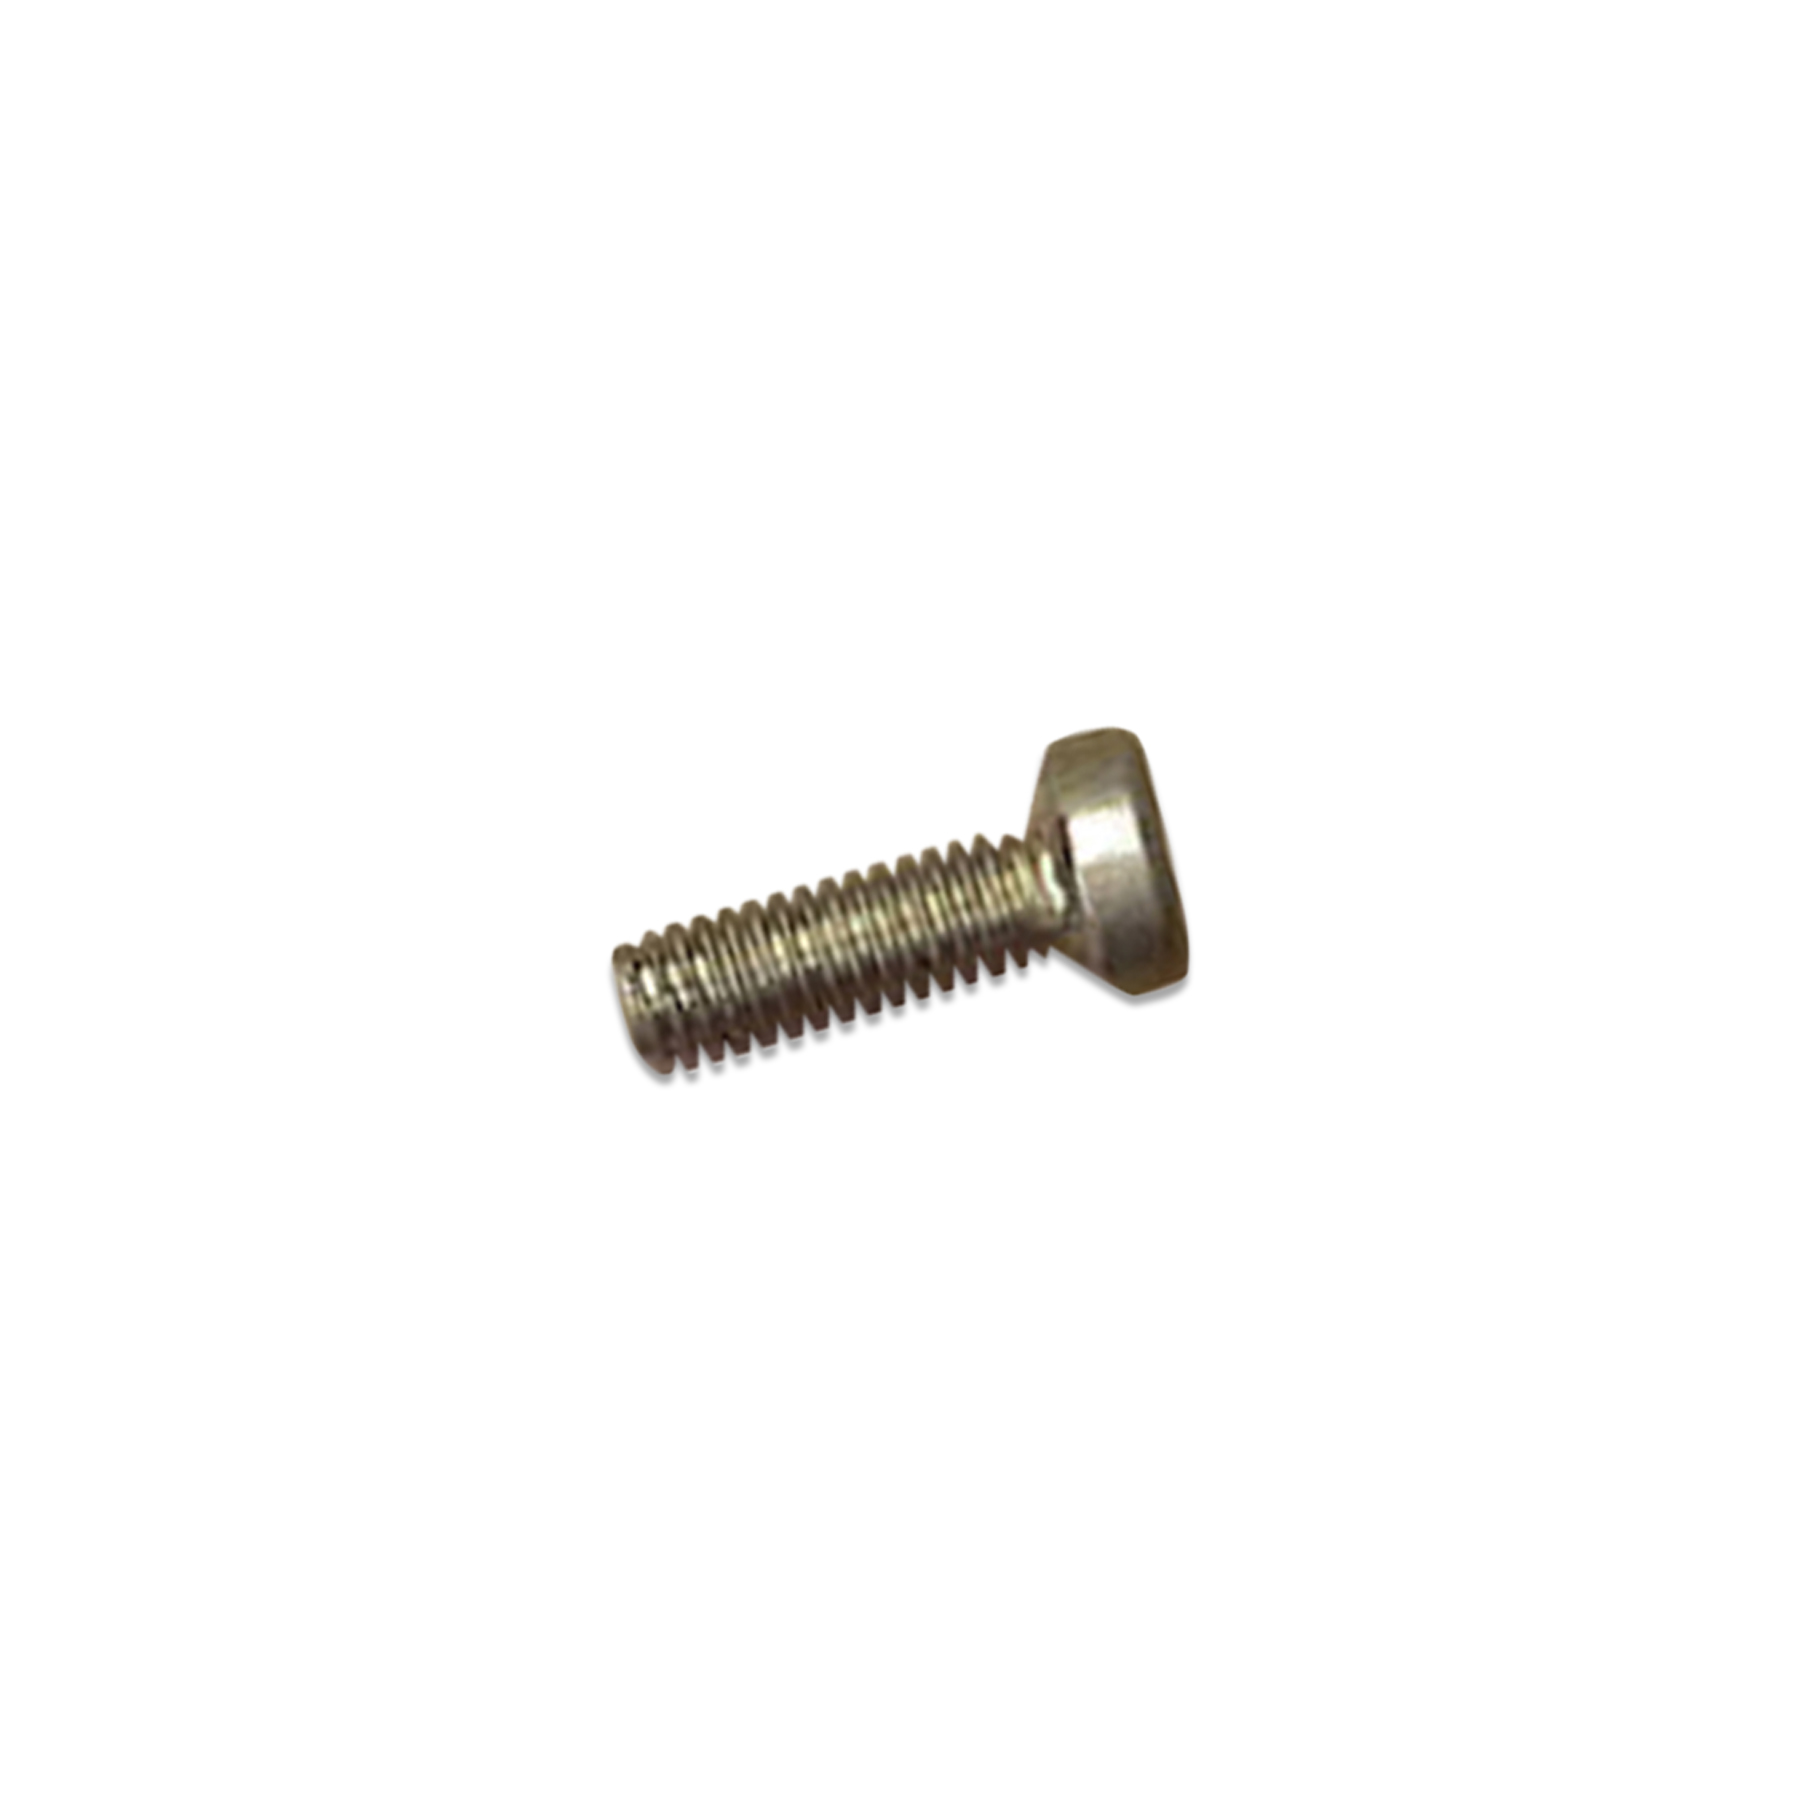 CONS Screw for Protection Cap, DBW-2010